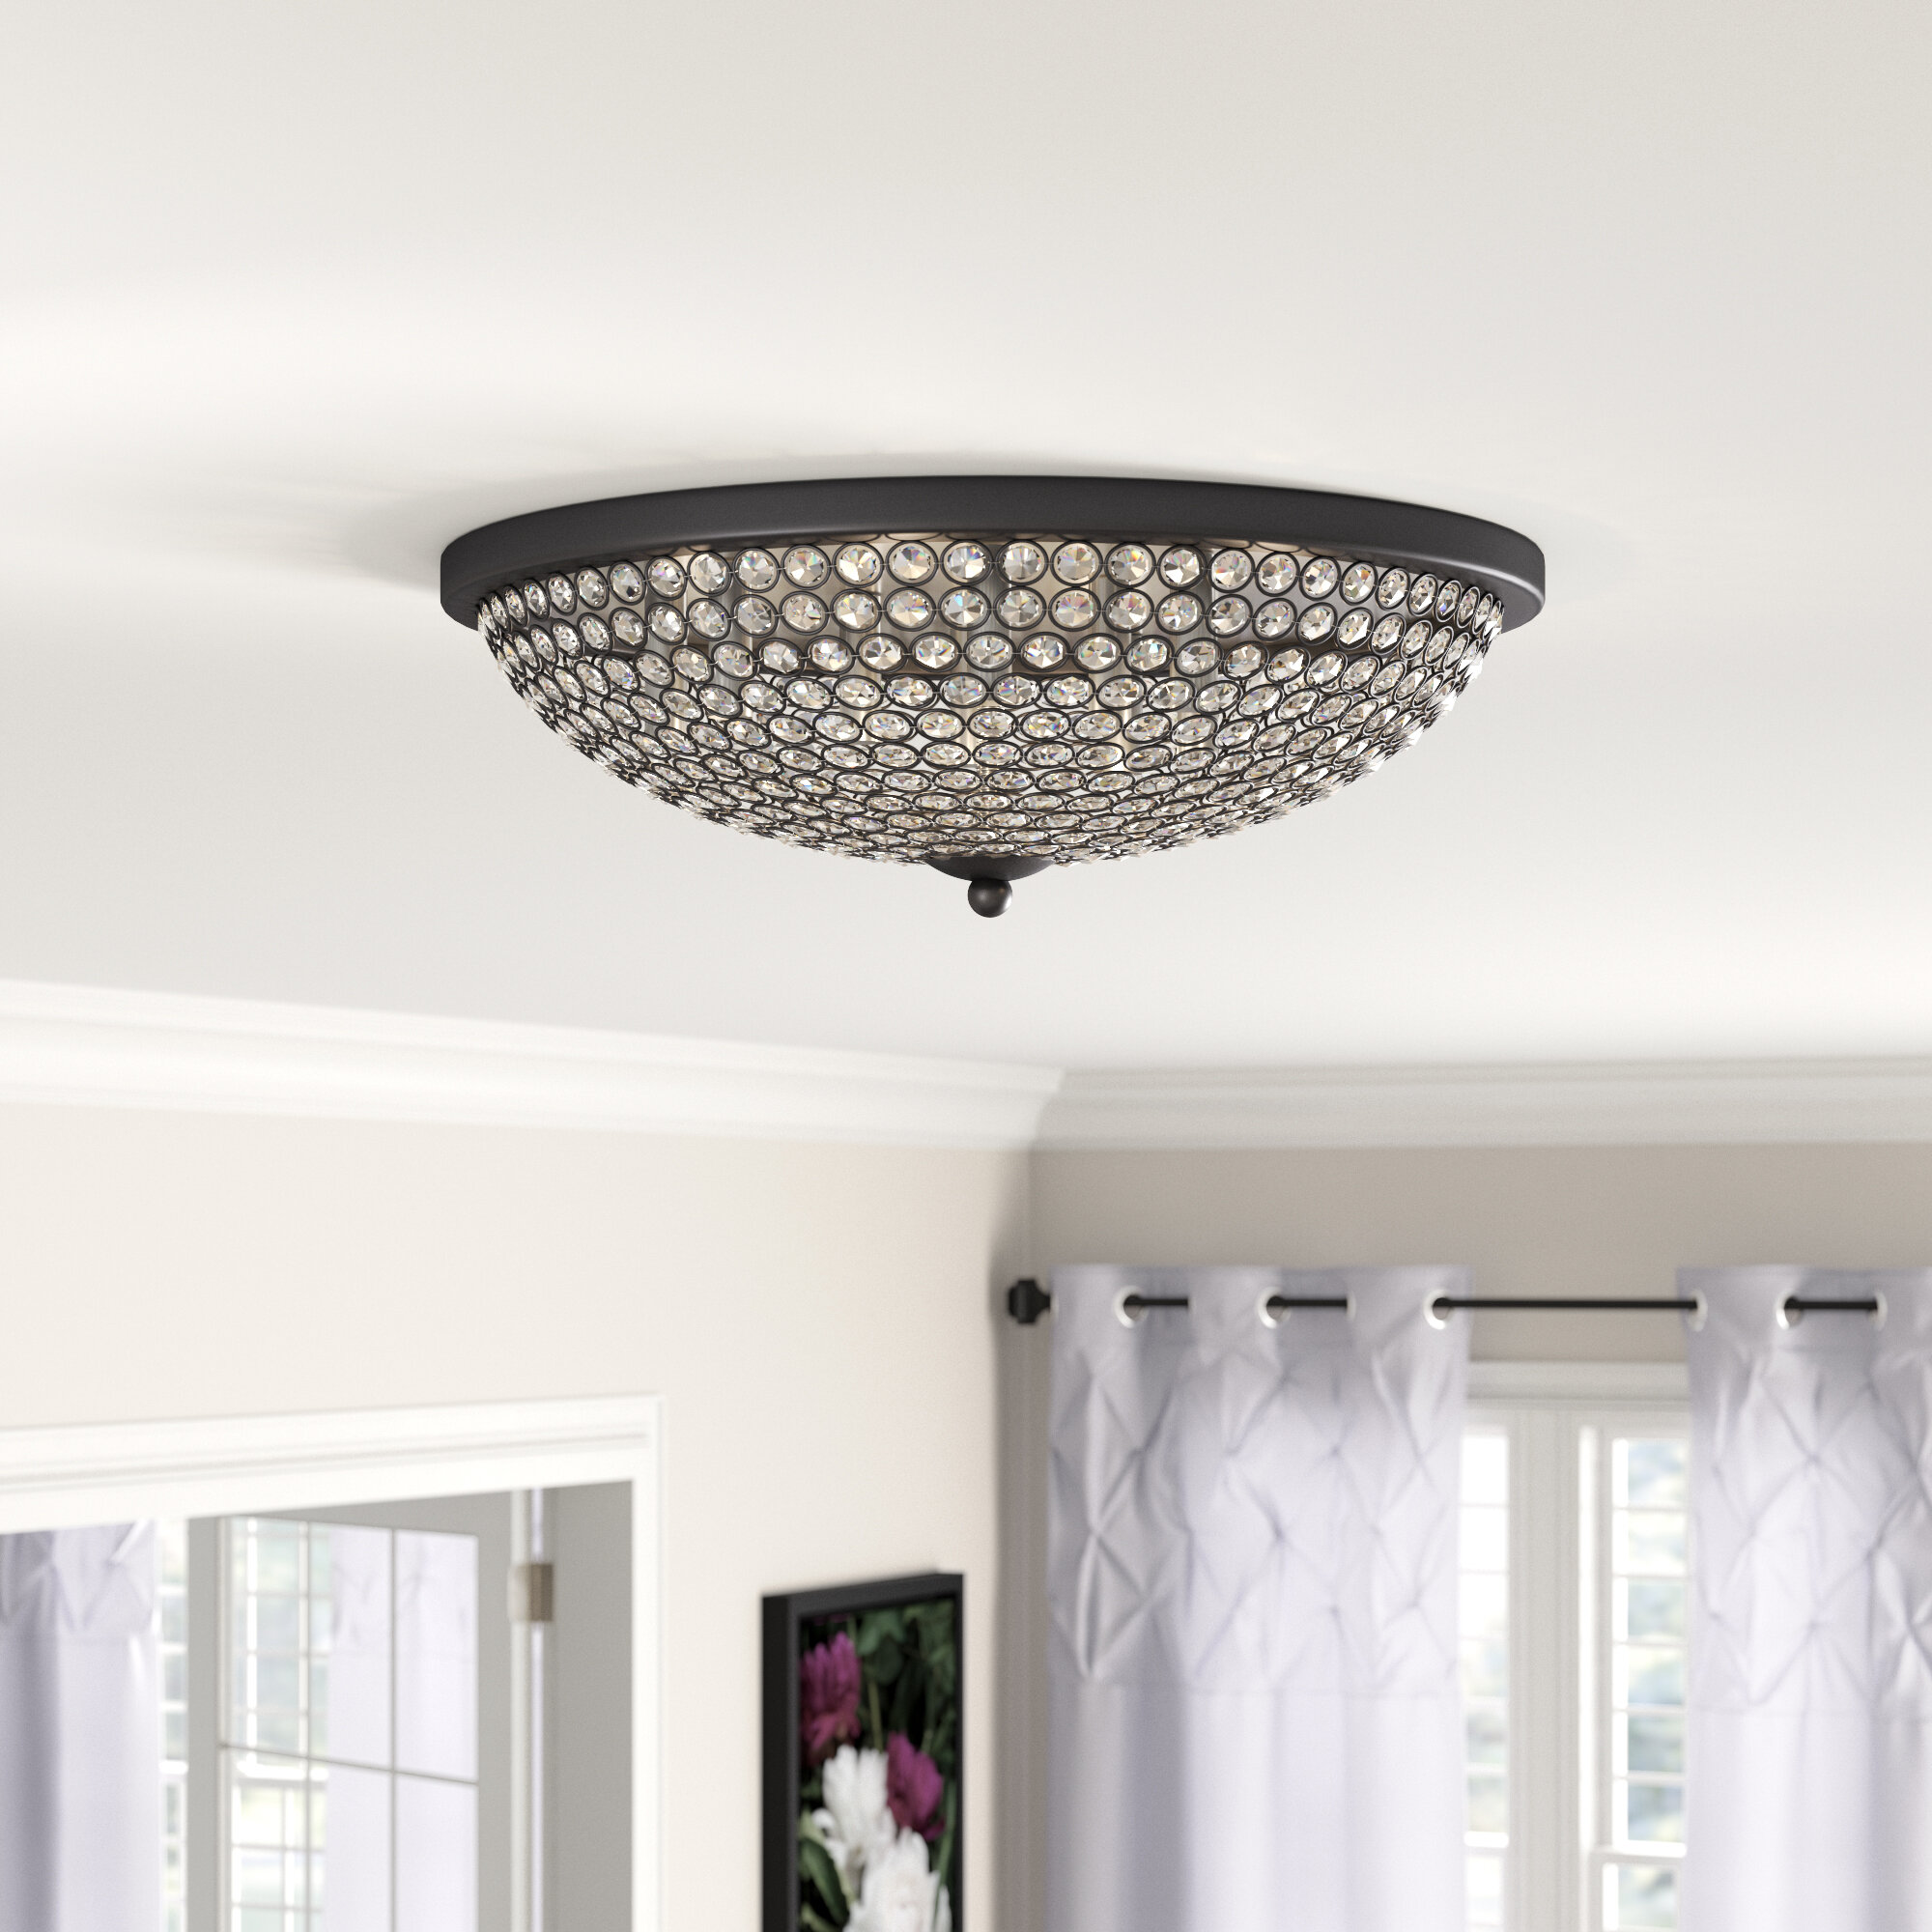 Crystal Accents Glass Flush Mount Lighting You Ll Love In 2021 Wayfair